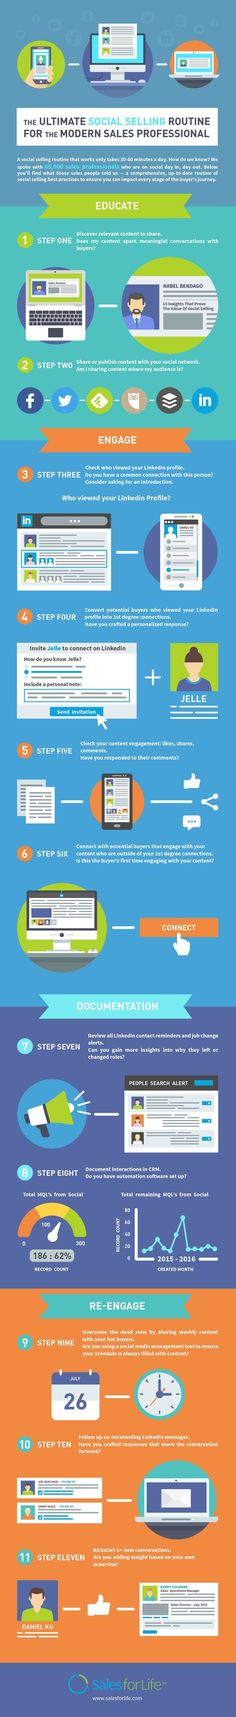 The Ultimate Social Selling Routine For The Modern Sales Pro [Infographic] | Social Media Today